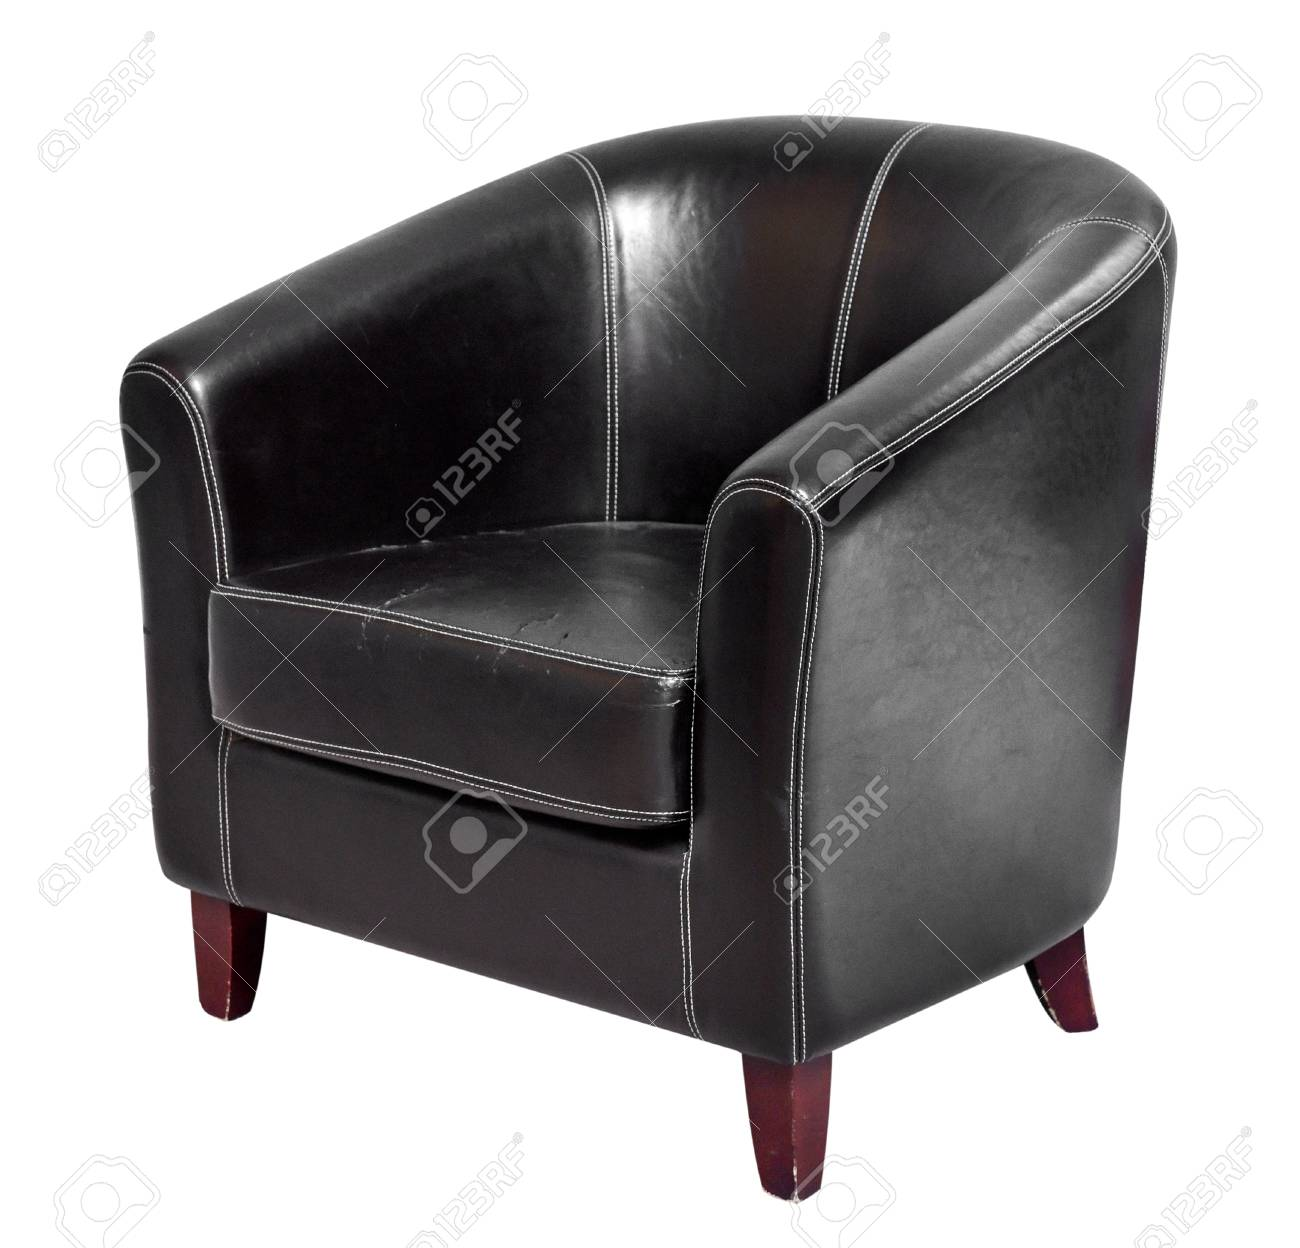 Charmant Black Leather Armchair With Round Back And Short Wooden Legs Isolated On  White Background Stock Photo